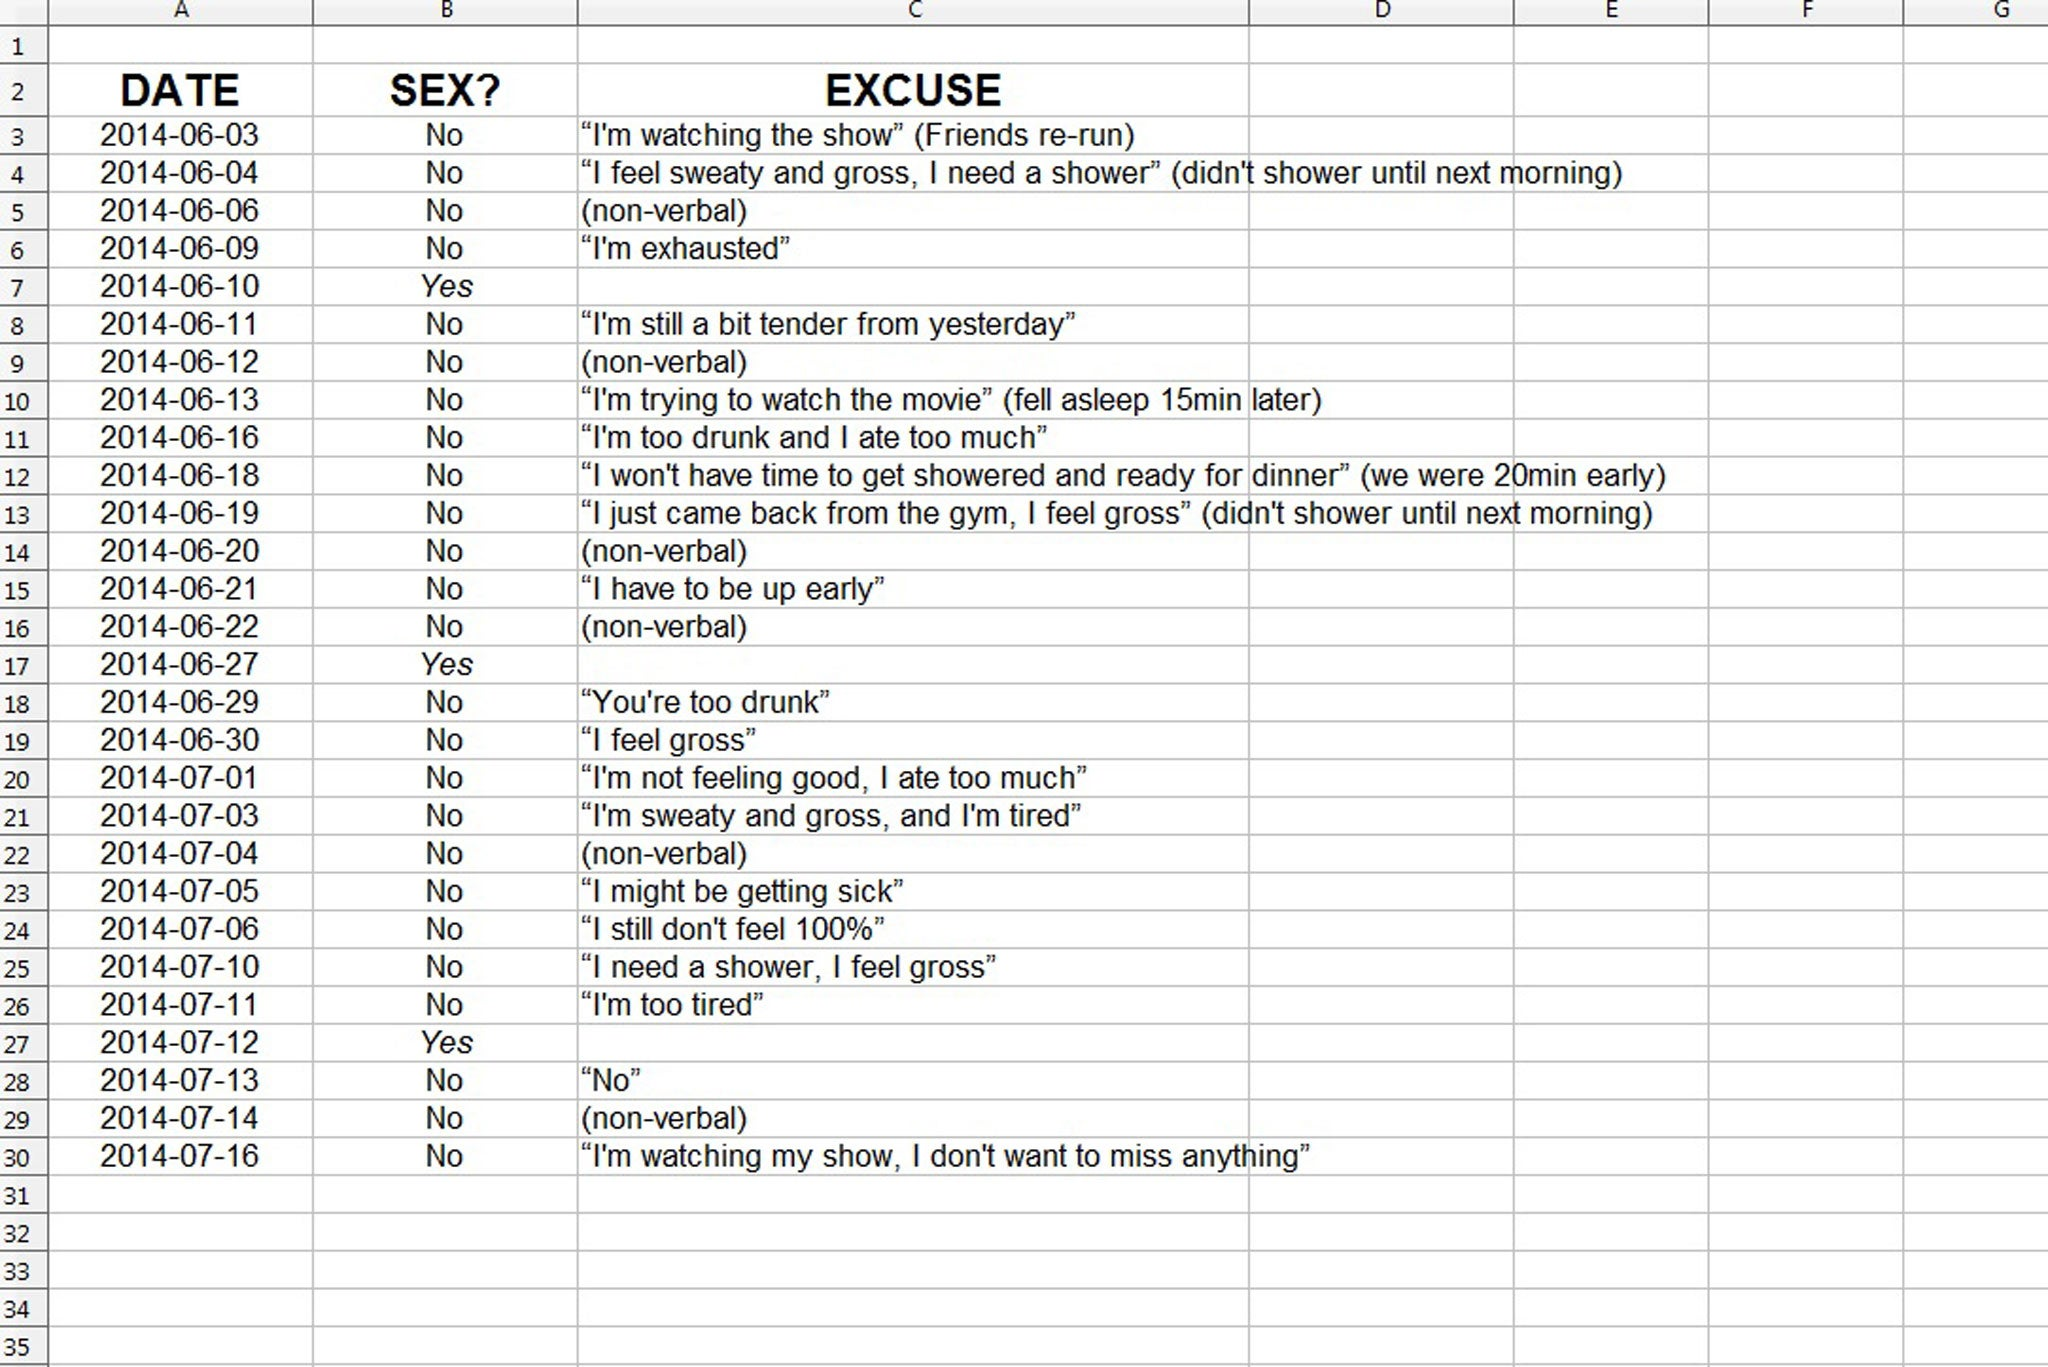 Husband creates spreadsheet detailing wife's 'excuses' for